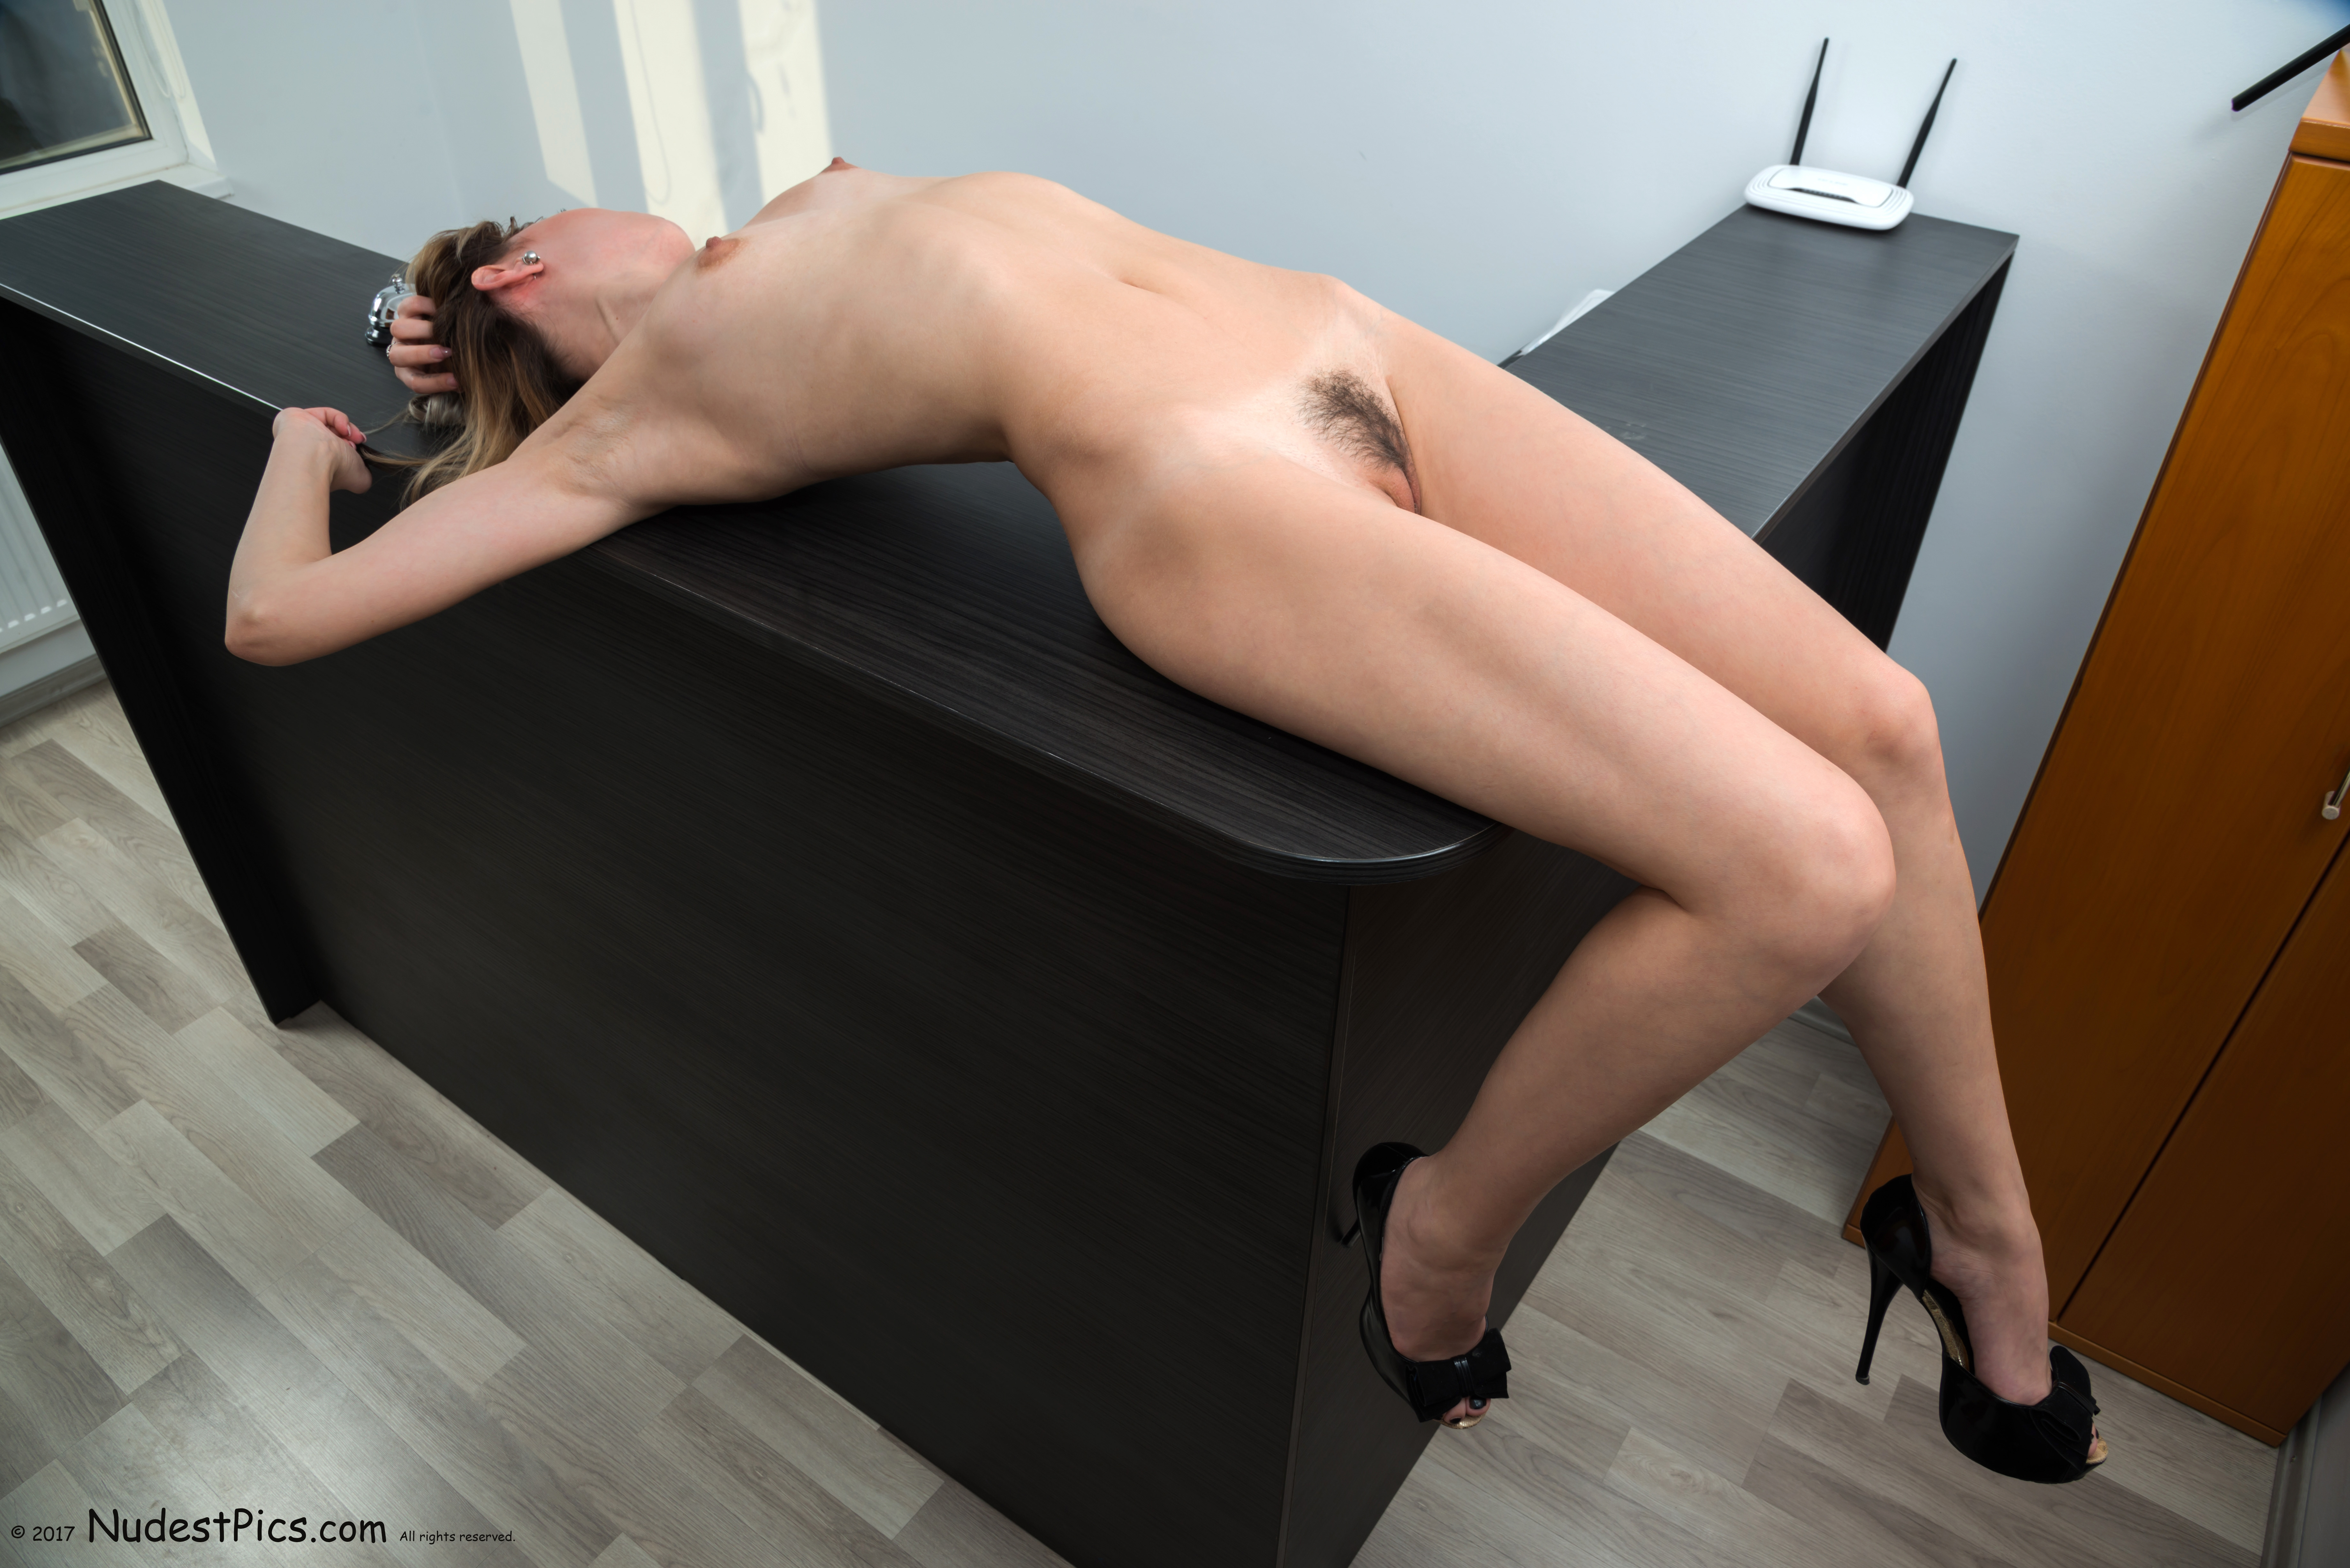 Hot Naked Secretary Stretching on the Desk HD